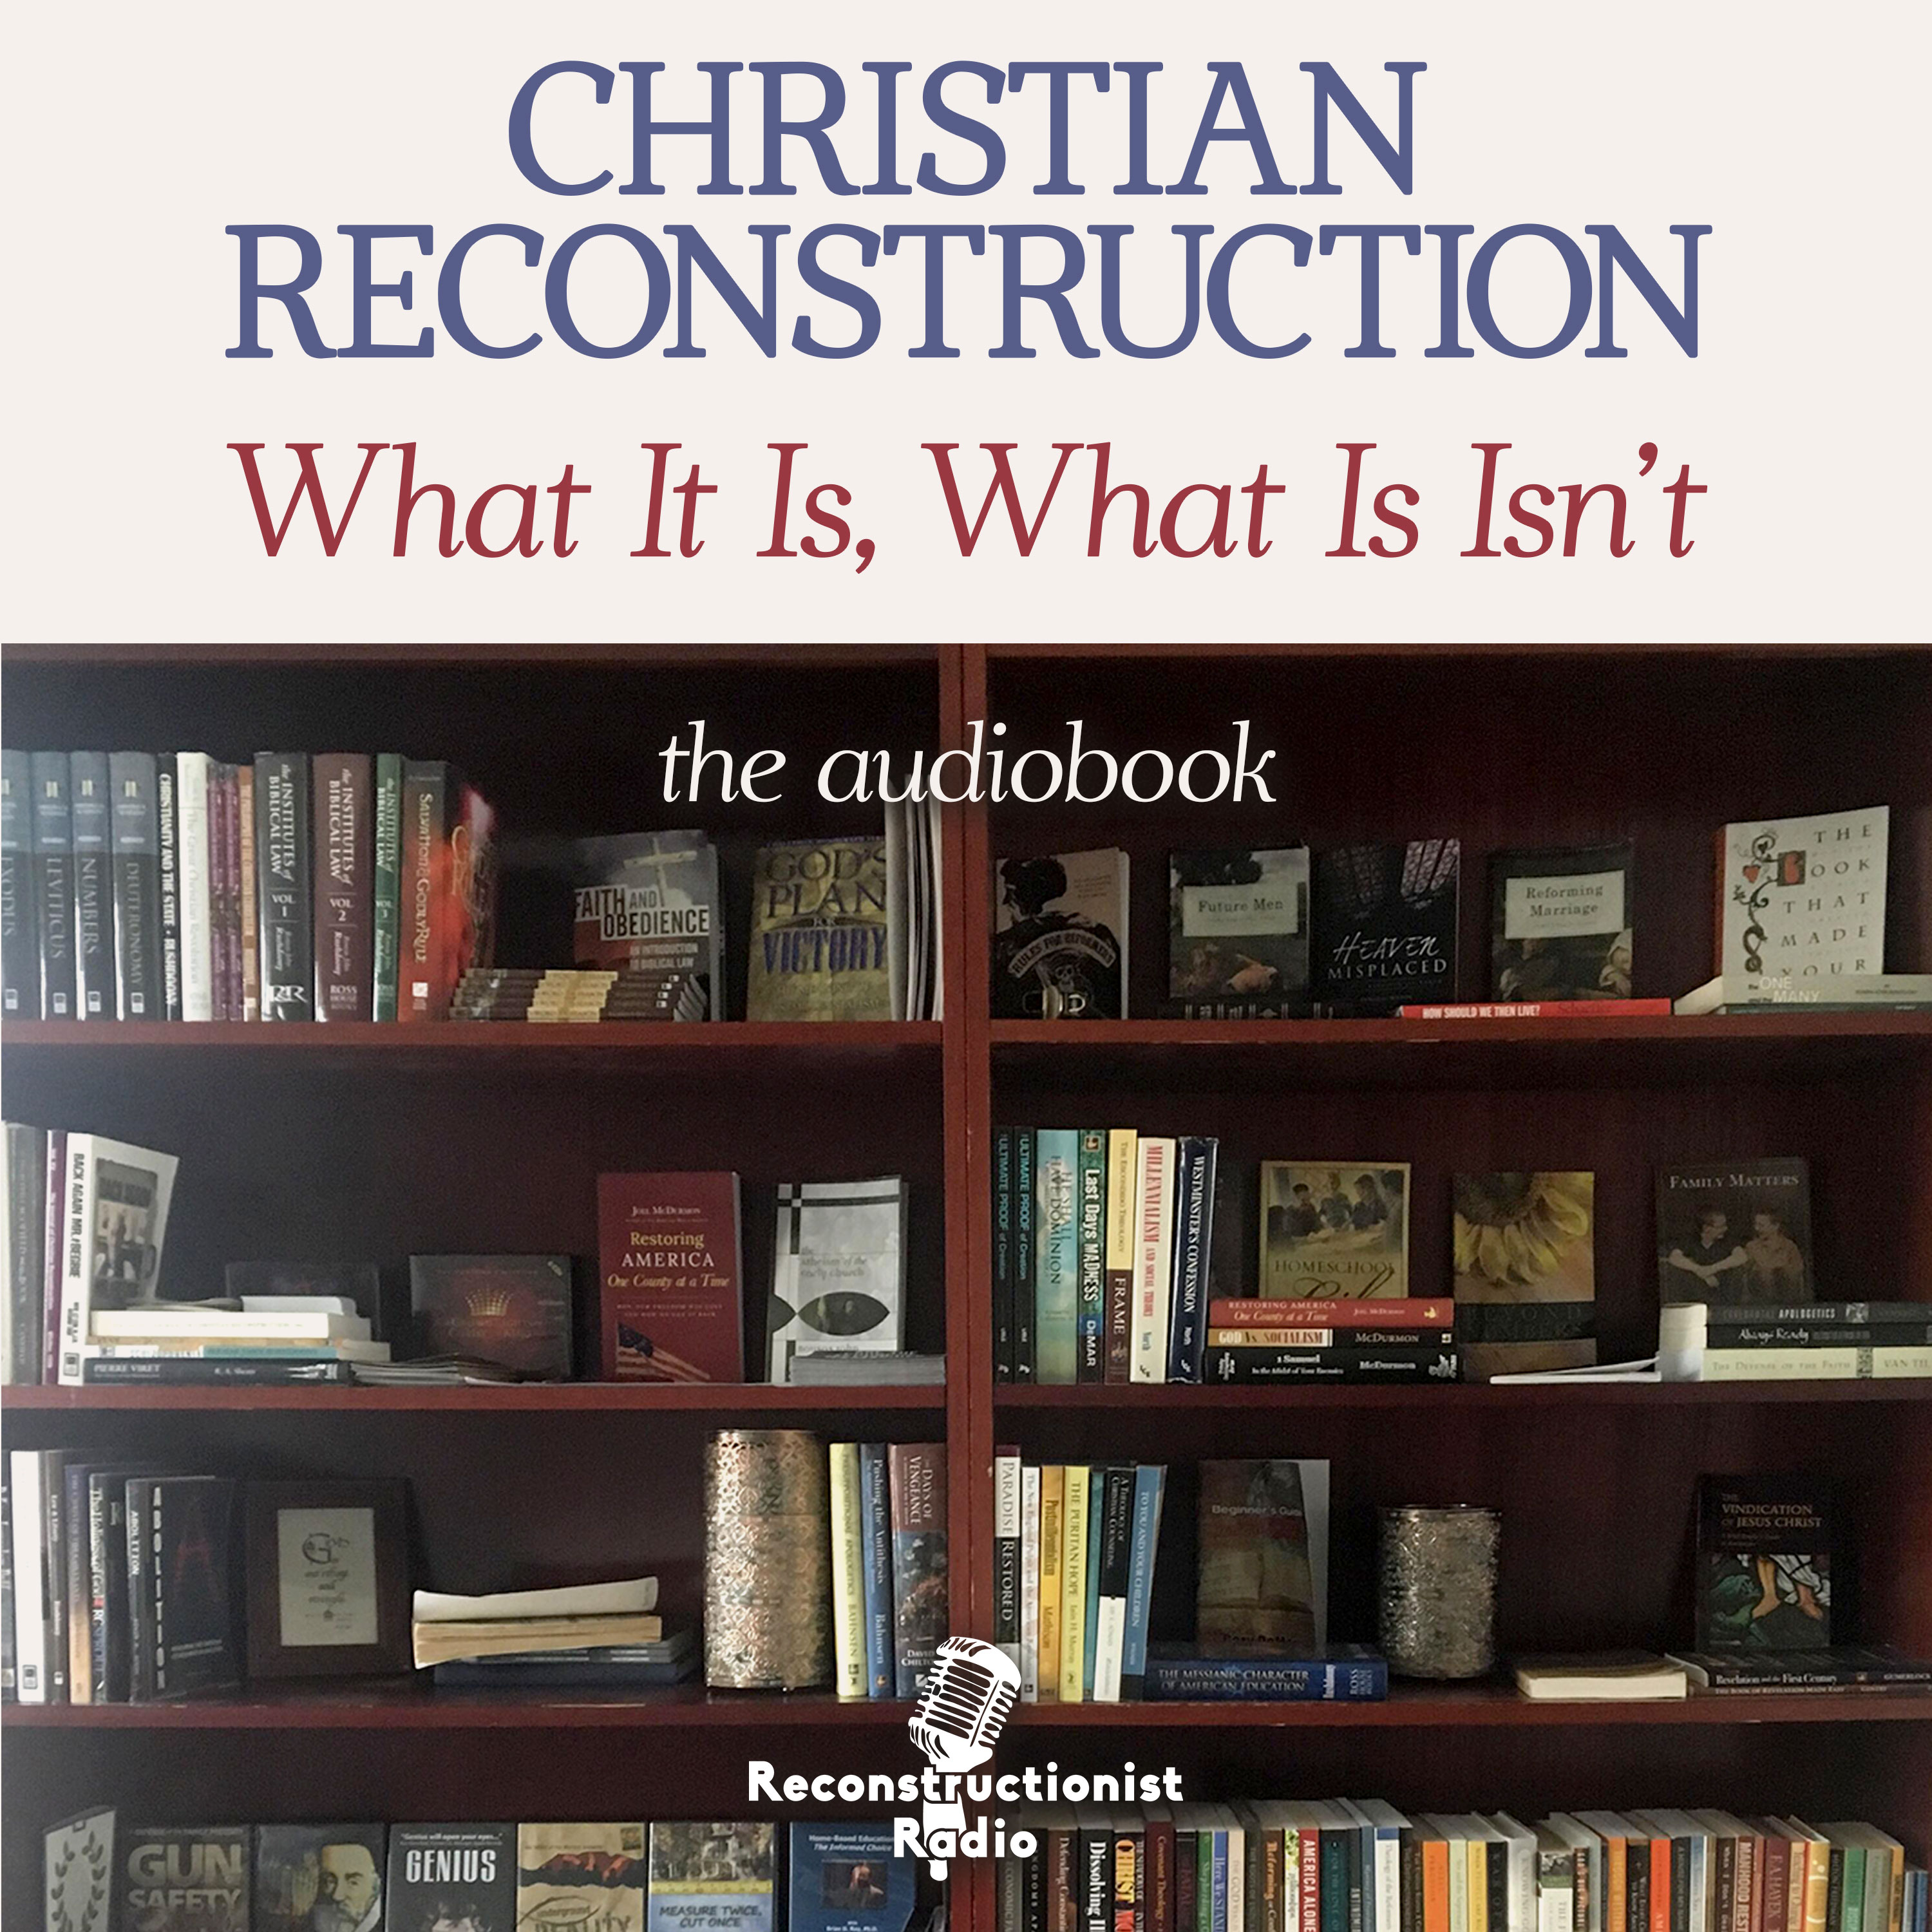 Christian Reconstruction: What It Is, What It Isn't